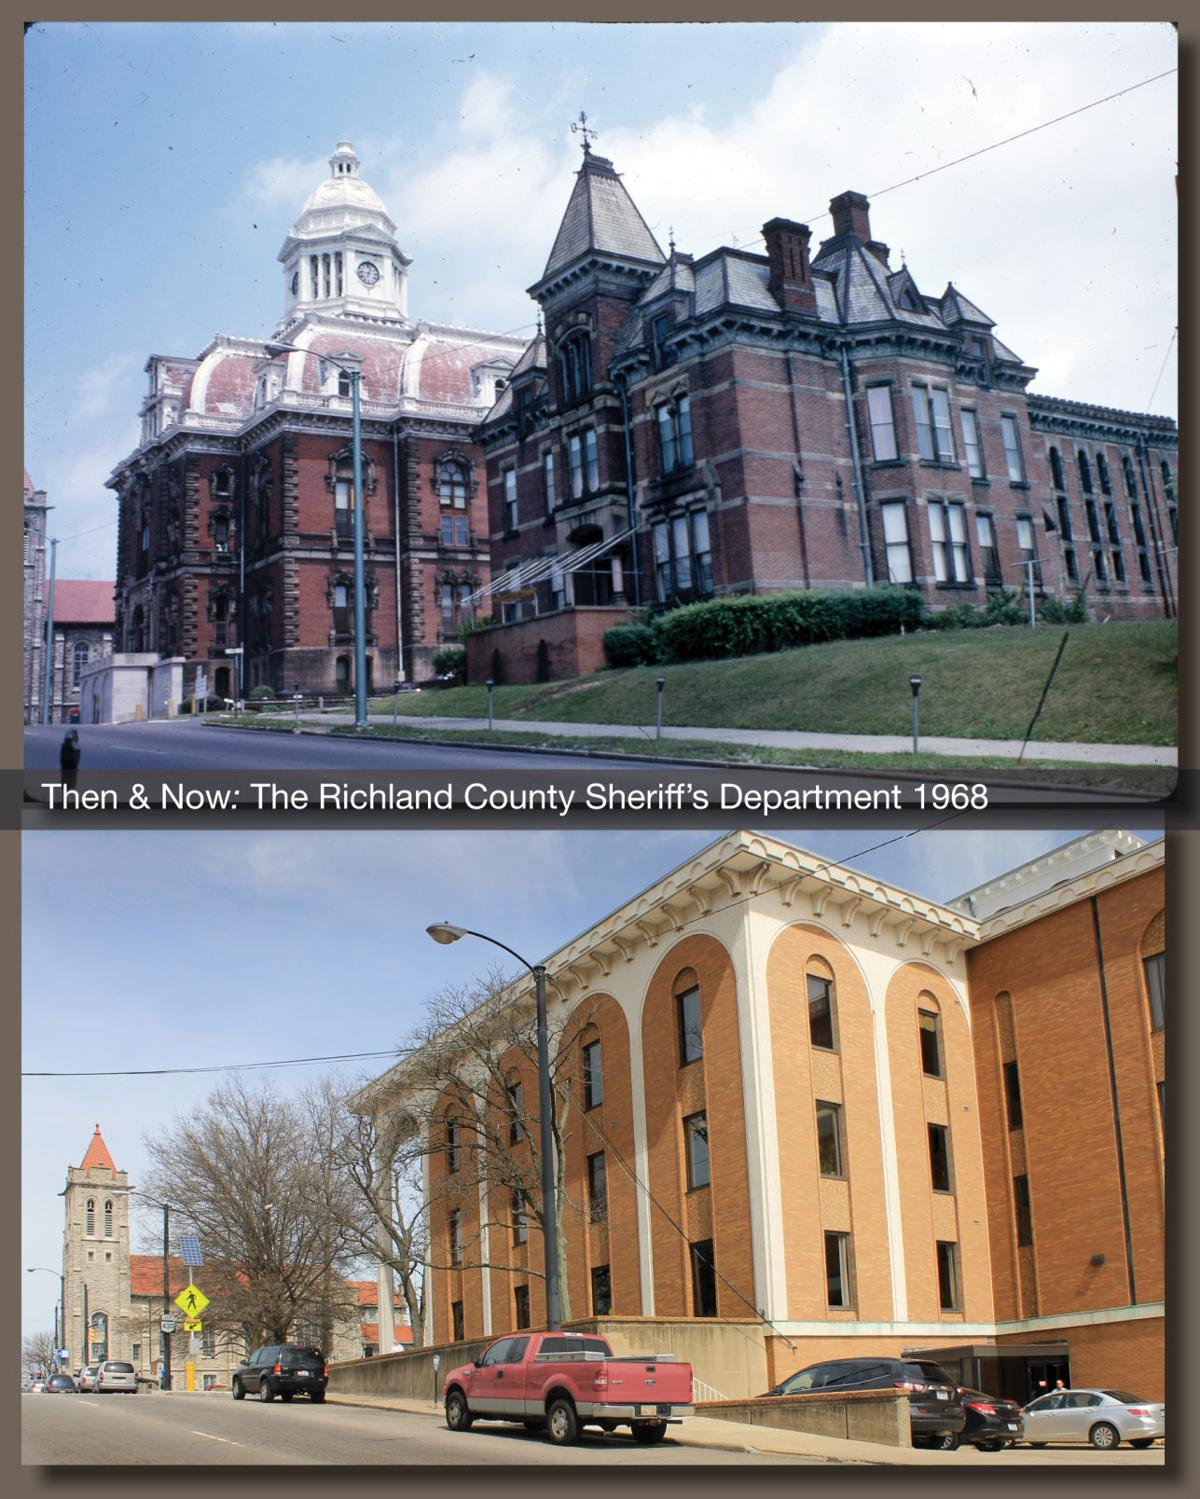 Then & Now: Richland County Sheriff 1968